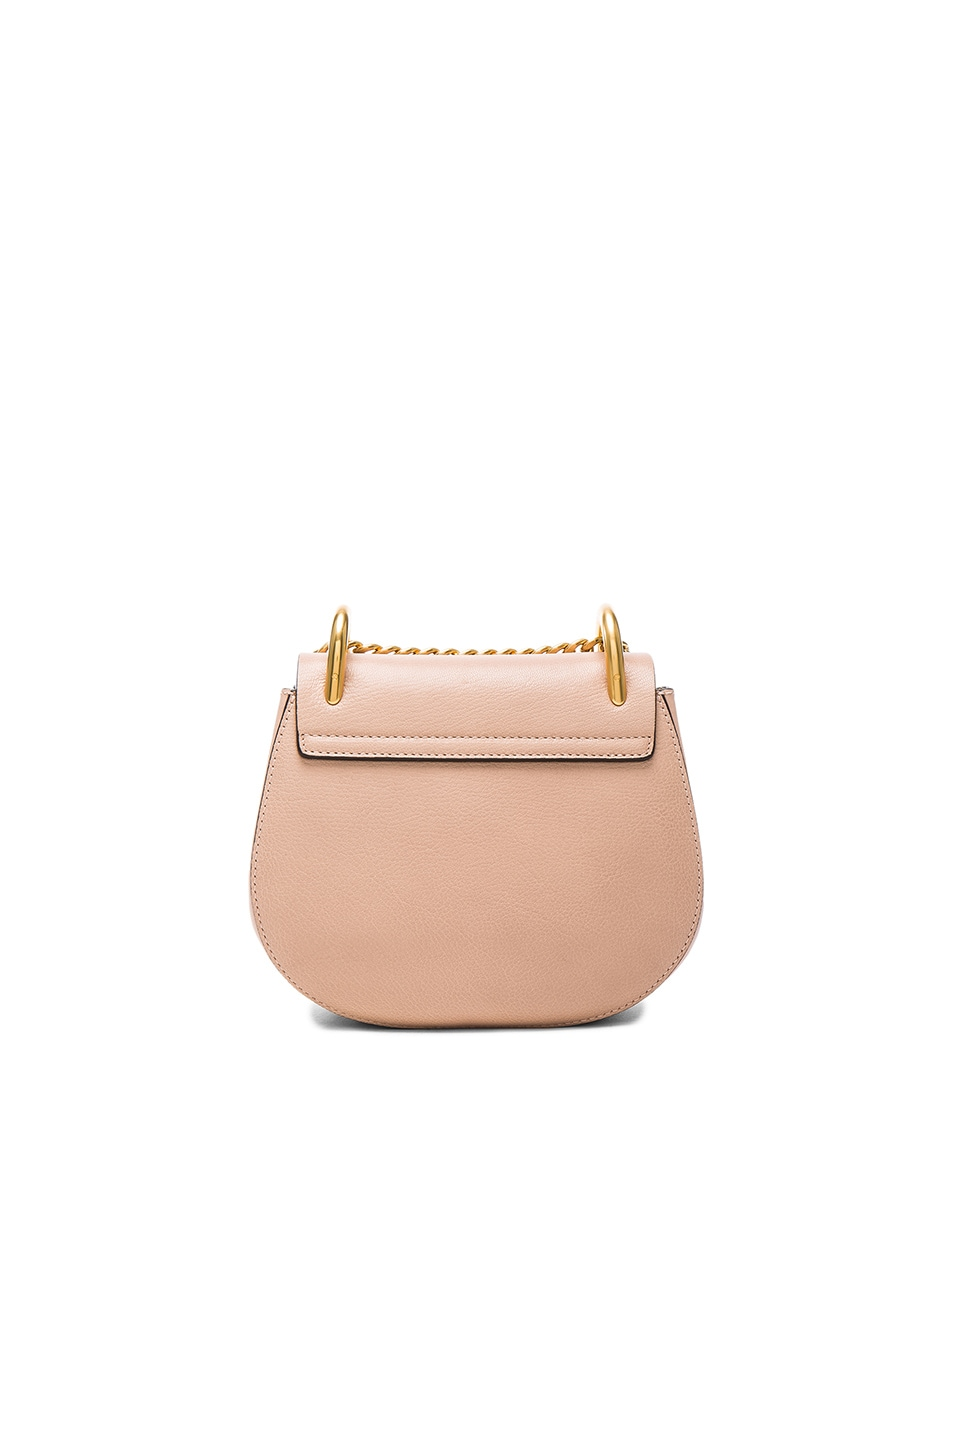 chloe drew coin purse. image 2 of chloe mini leather drew shoulder bag in biscotti beige coin purse